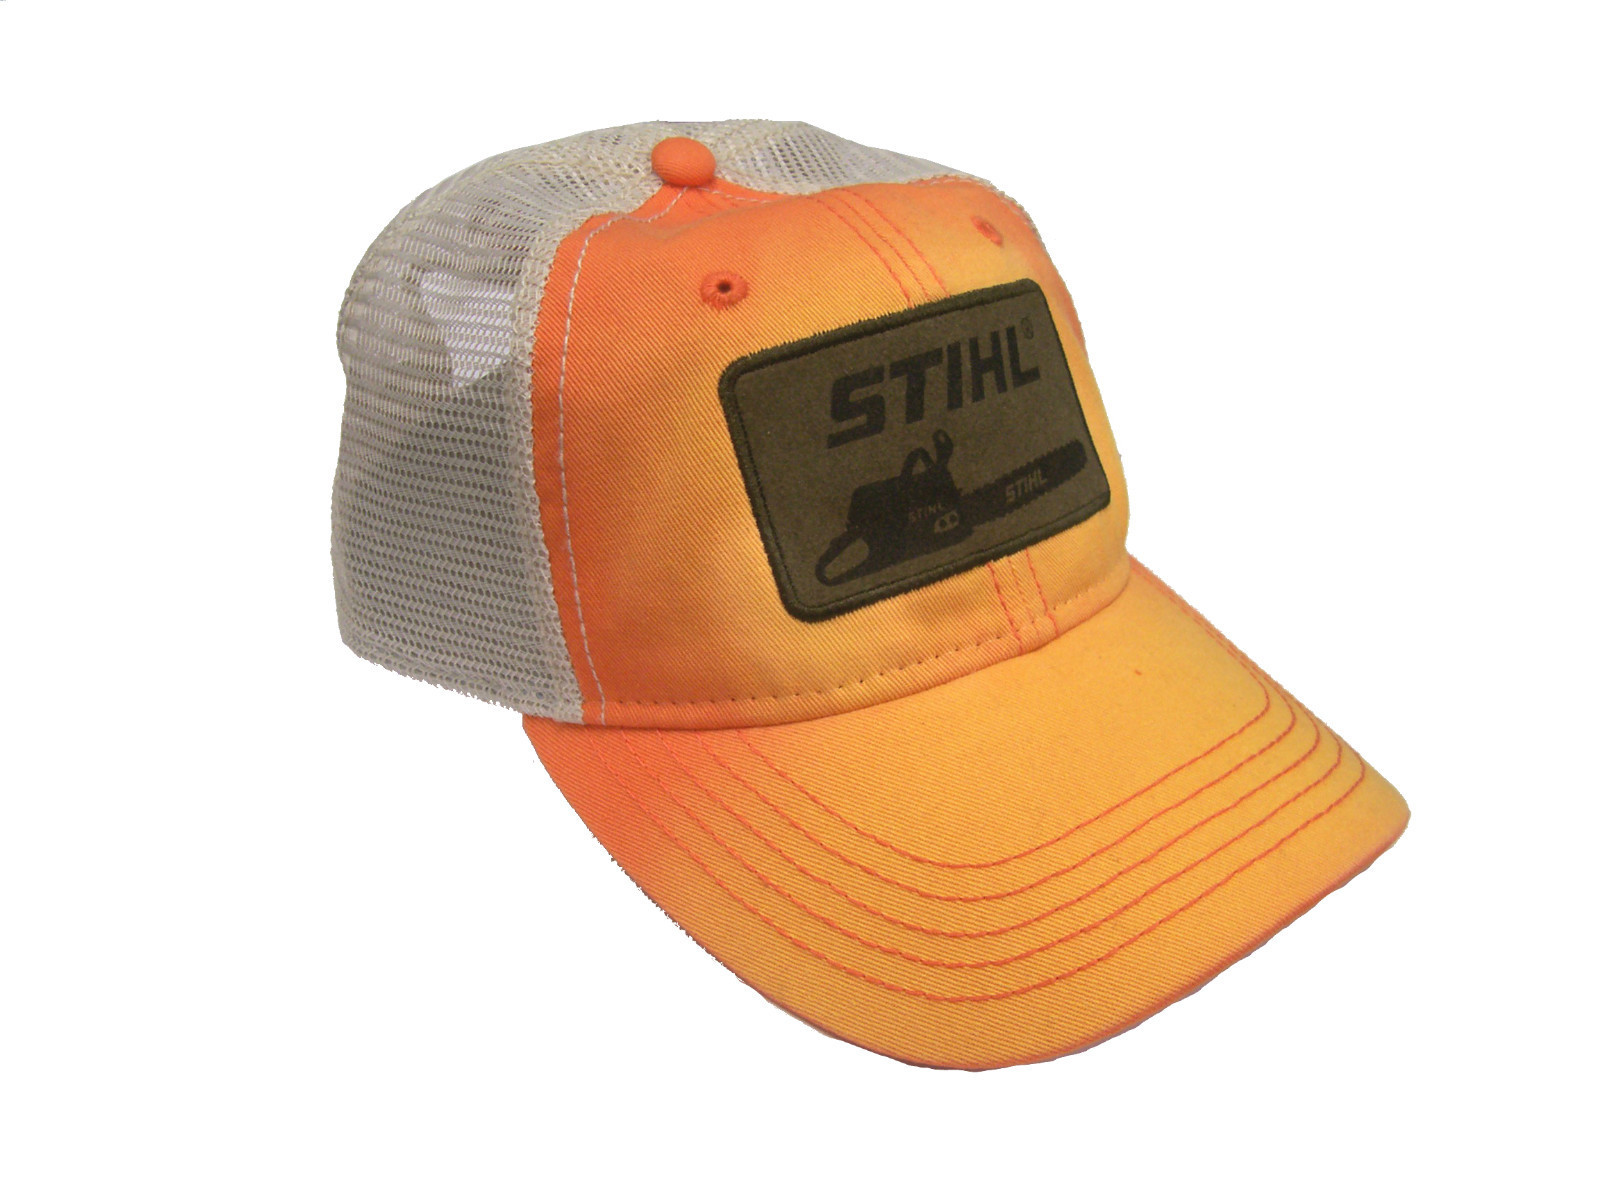 stihl 840902 washed faded orange twill white mesh ball cap ebay. Black Bedroom Furniture Sets. Home Design Ideas